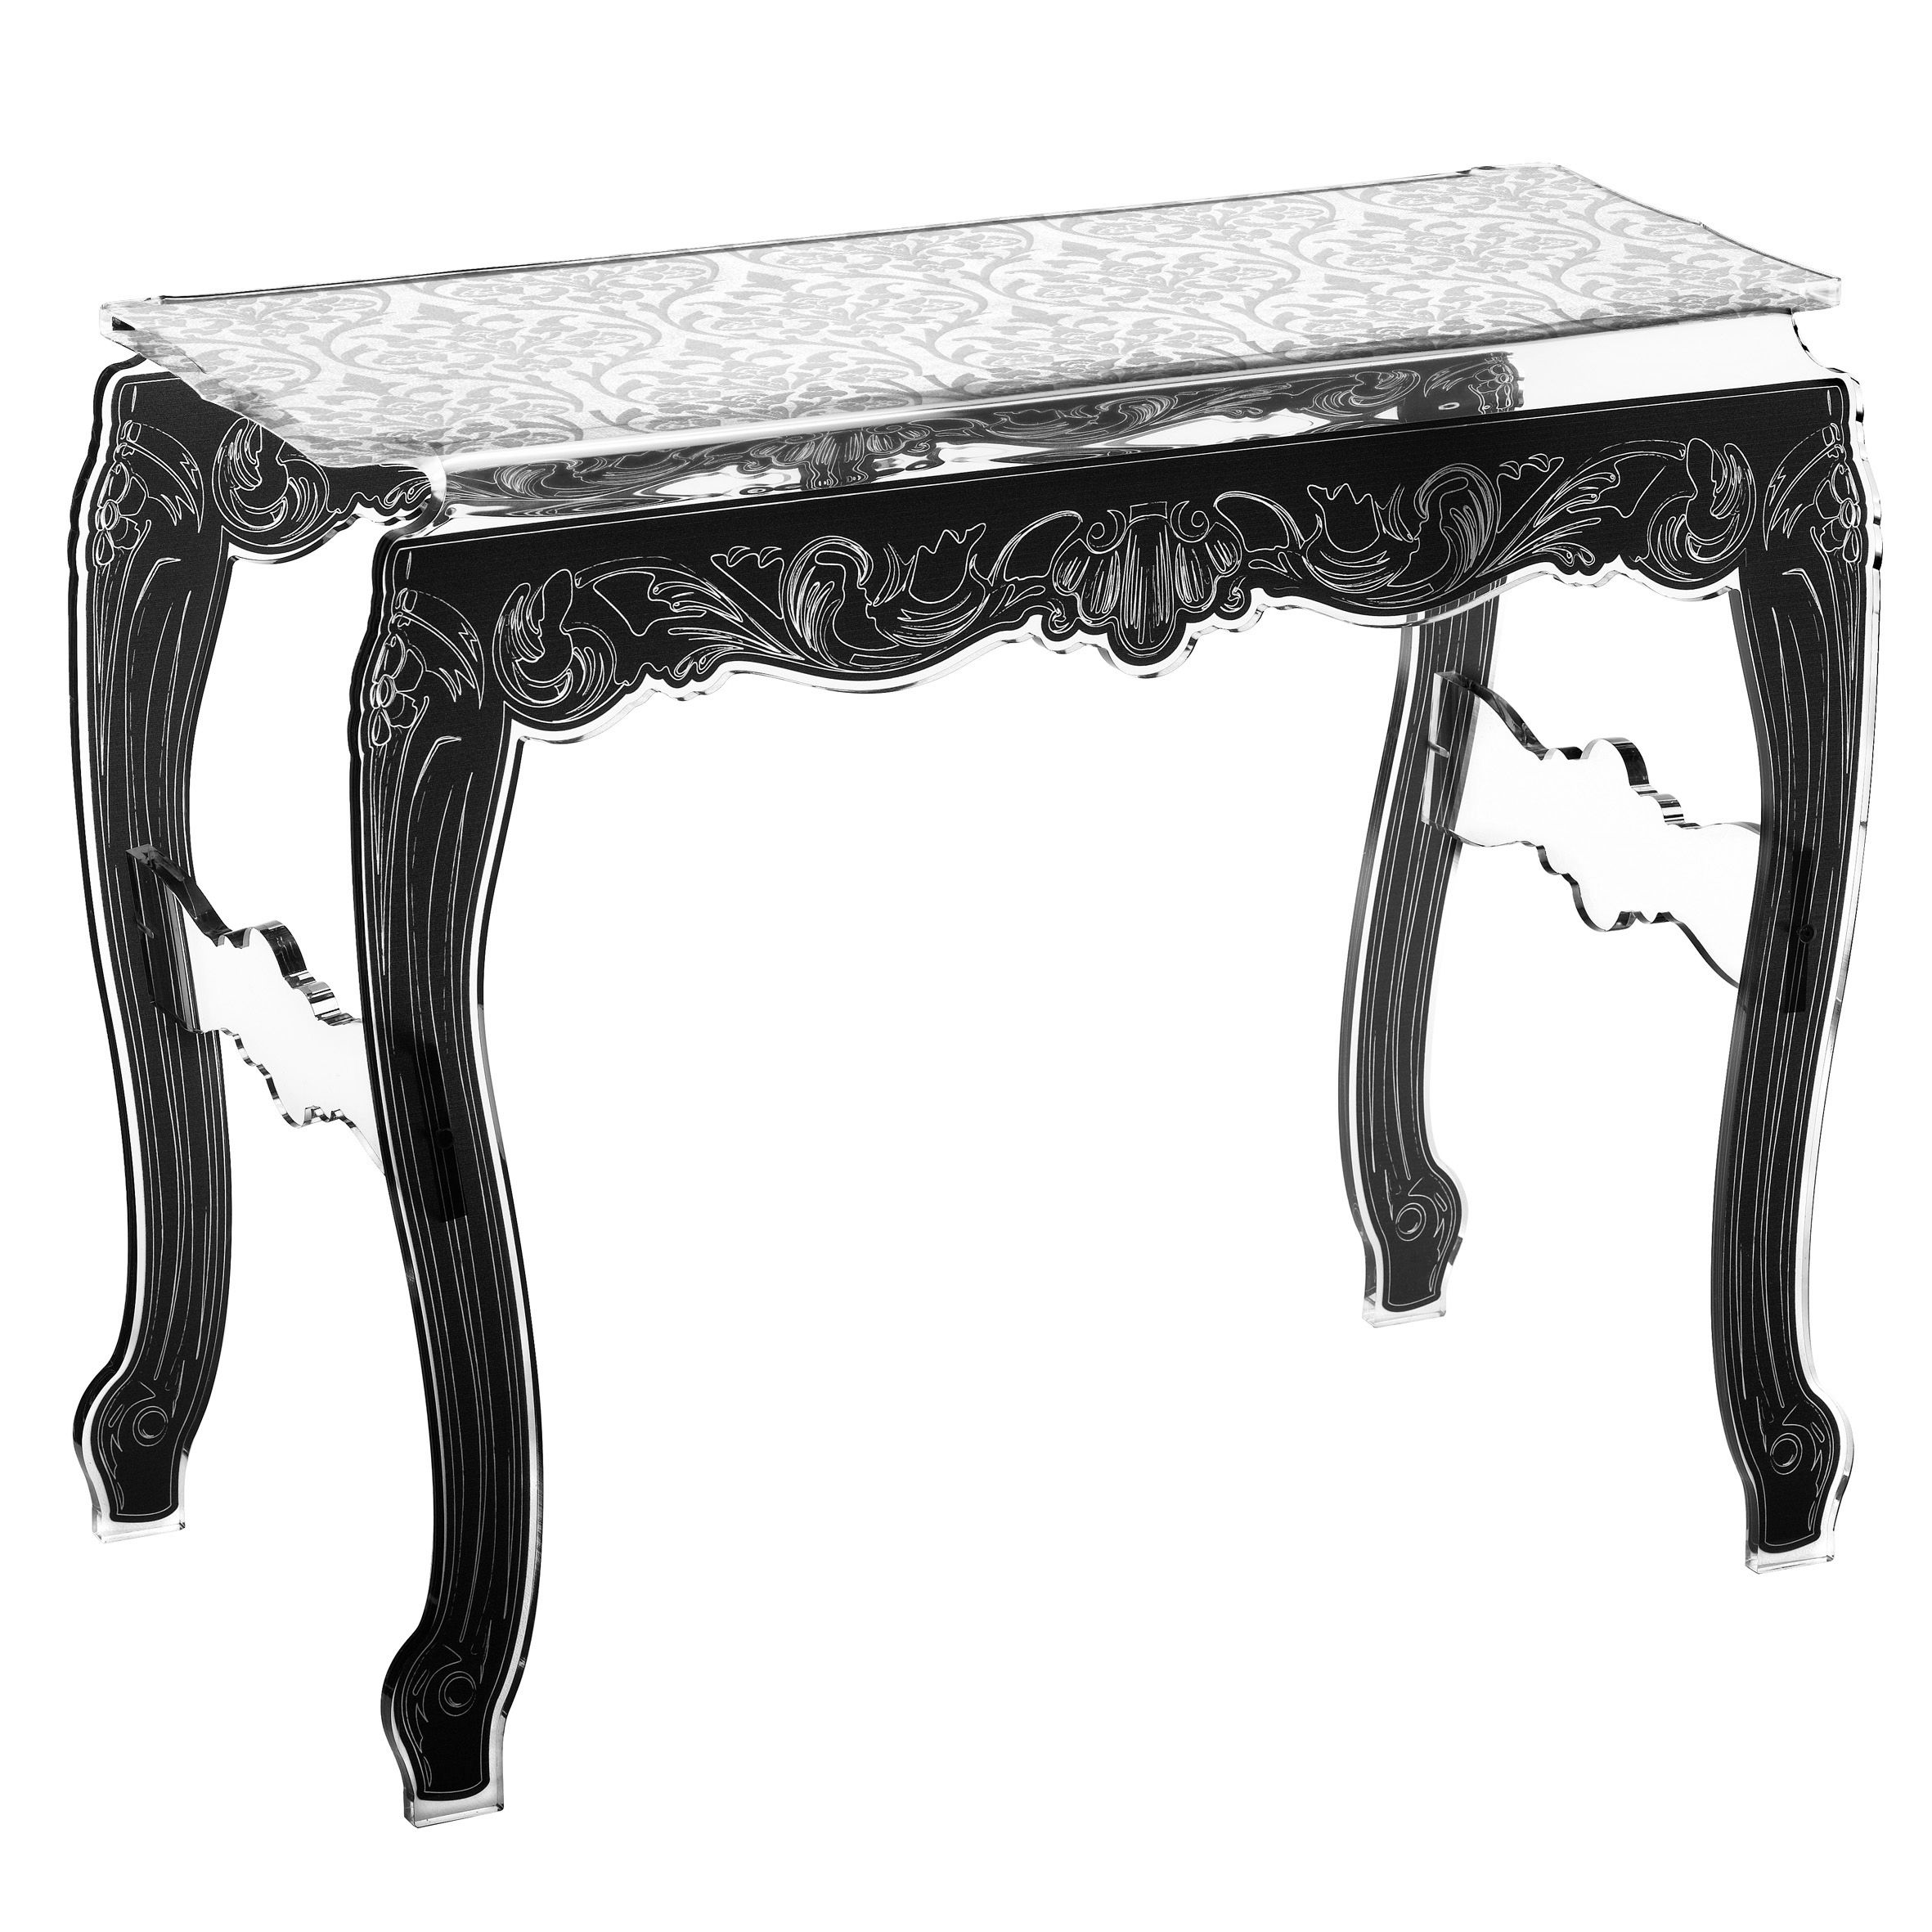 Explore Acrylic Side Table, Acrylic Furniture And More